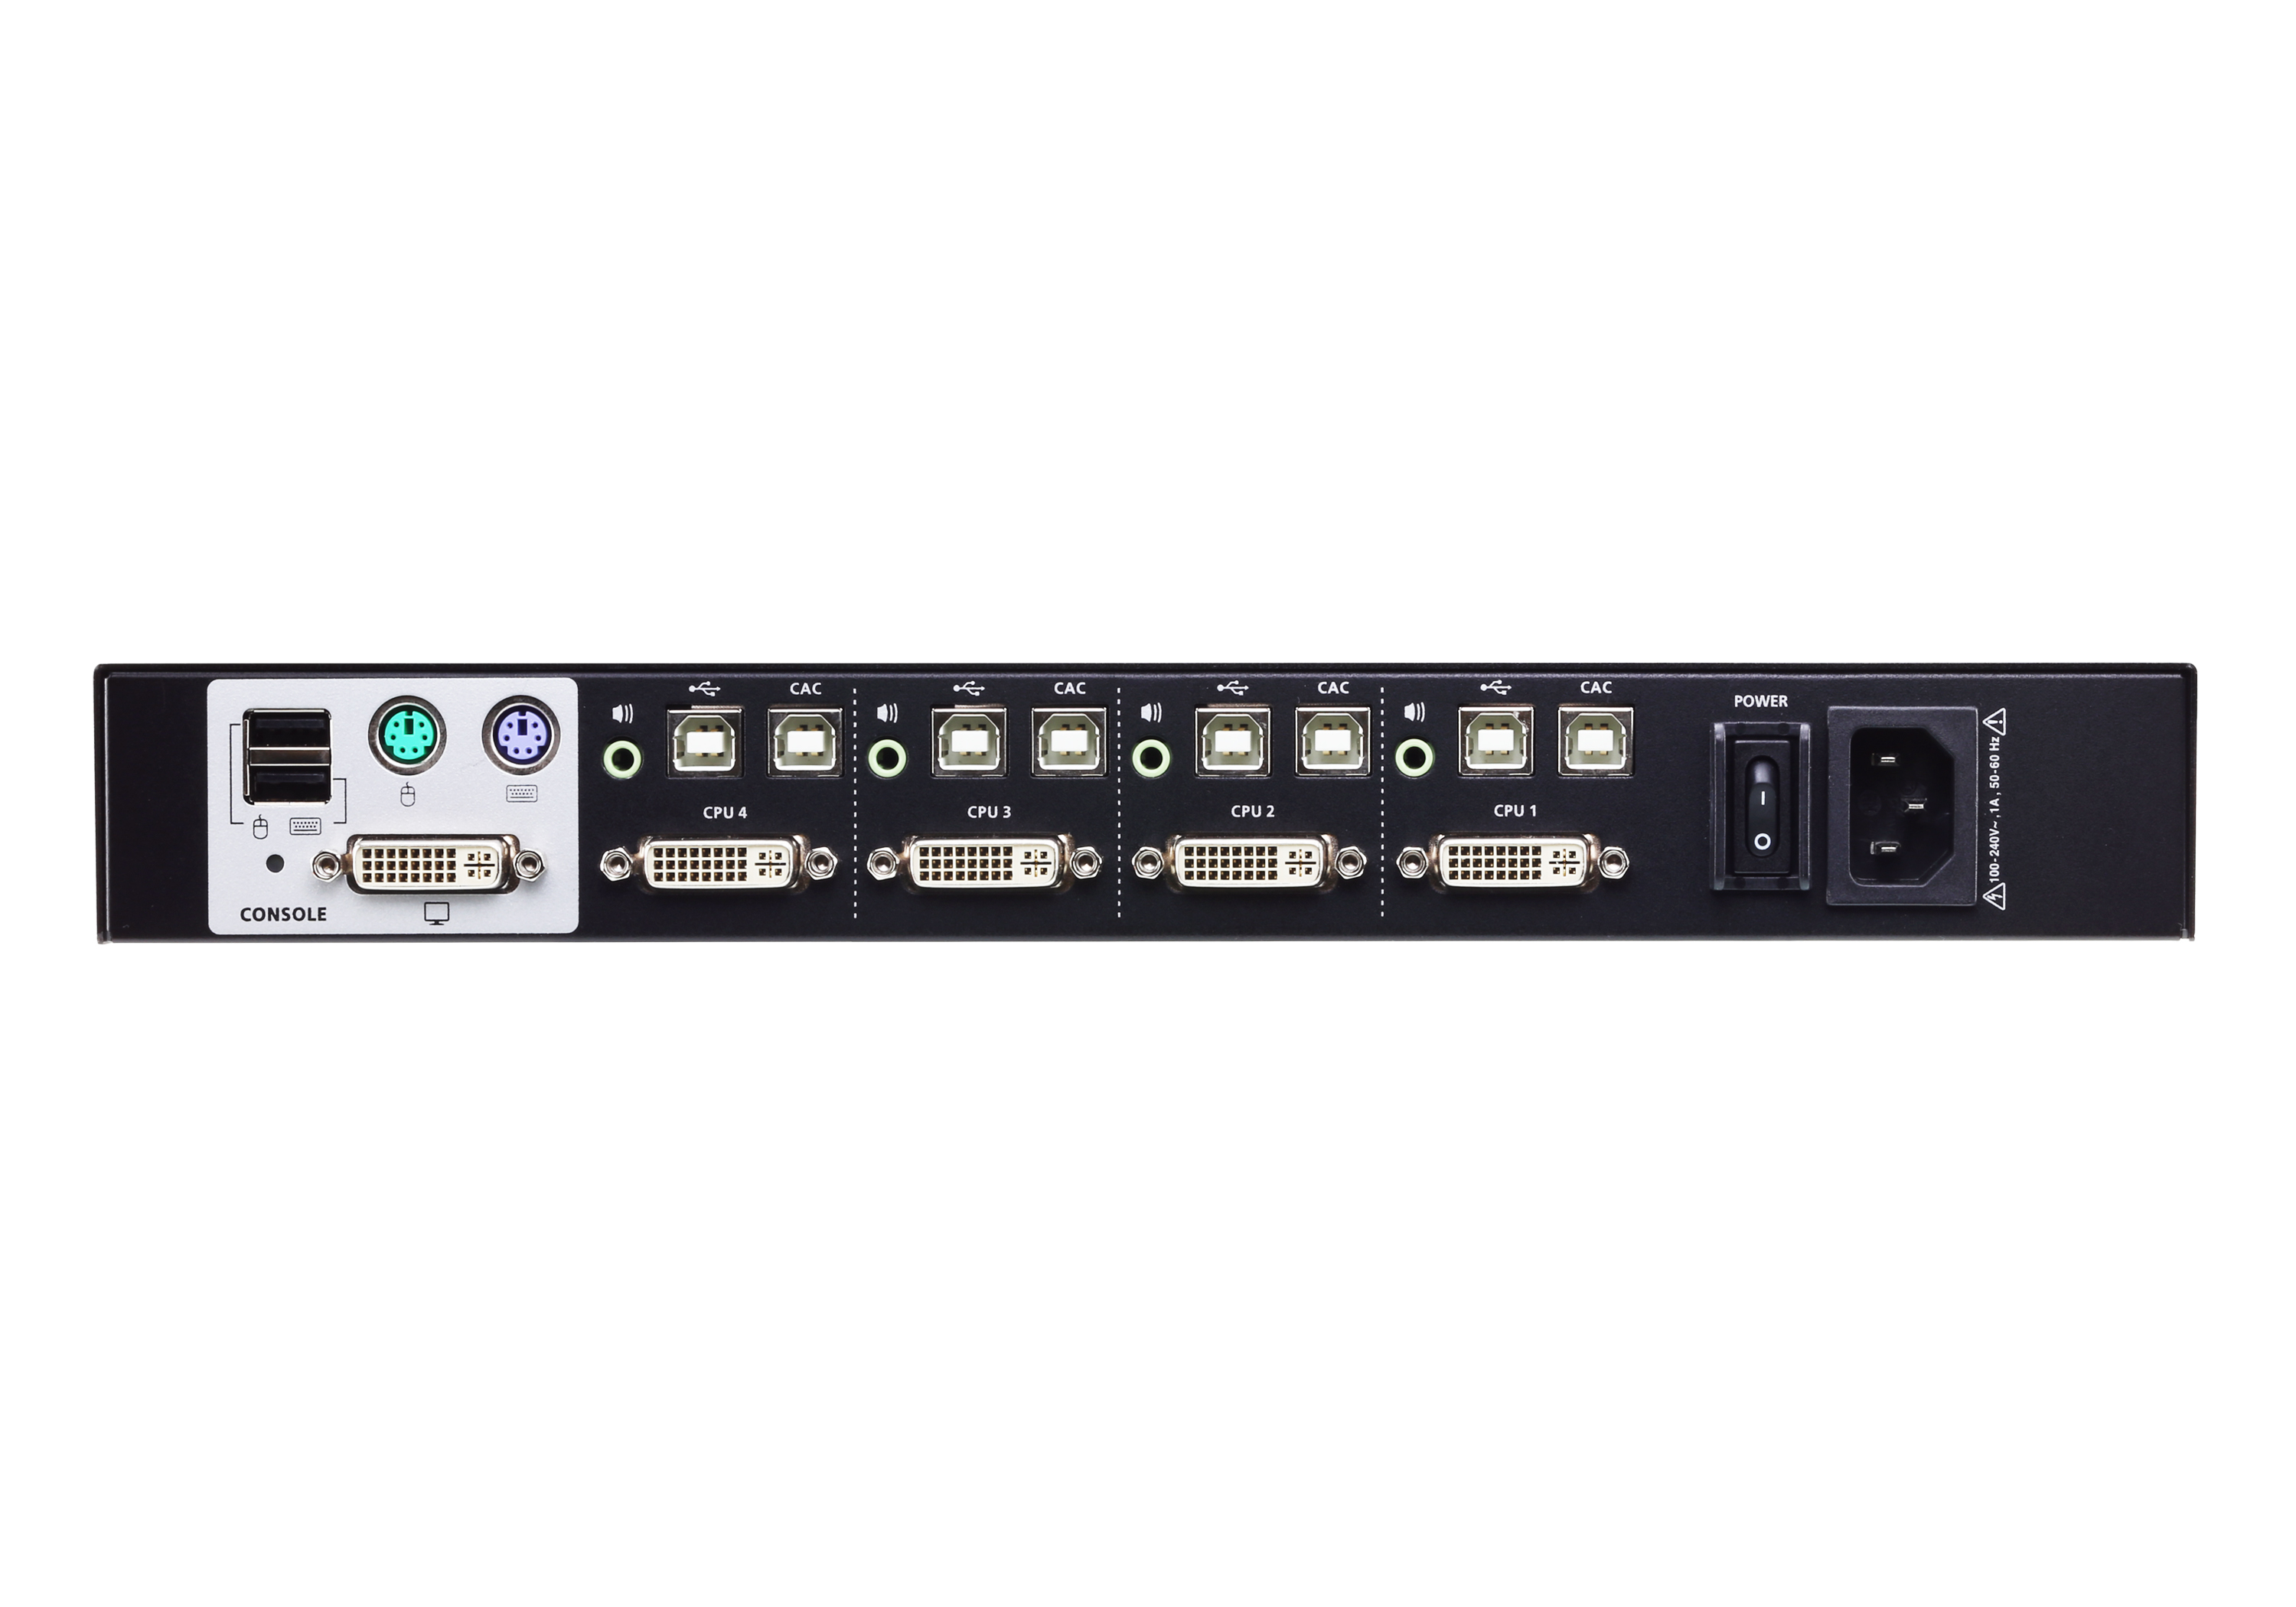 4-Port USB DVI Secure KVM Switch (PSS PP v3.0 Compliant)-2